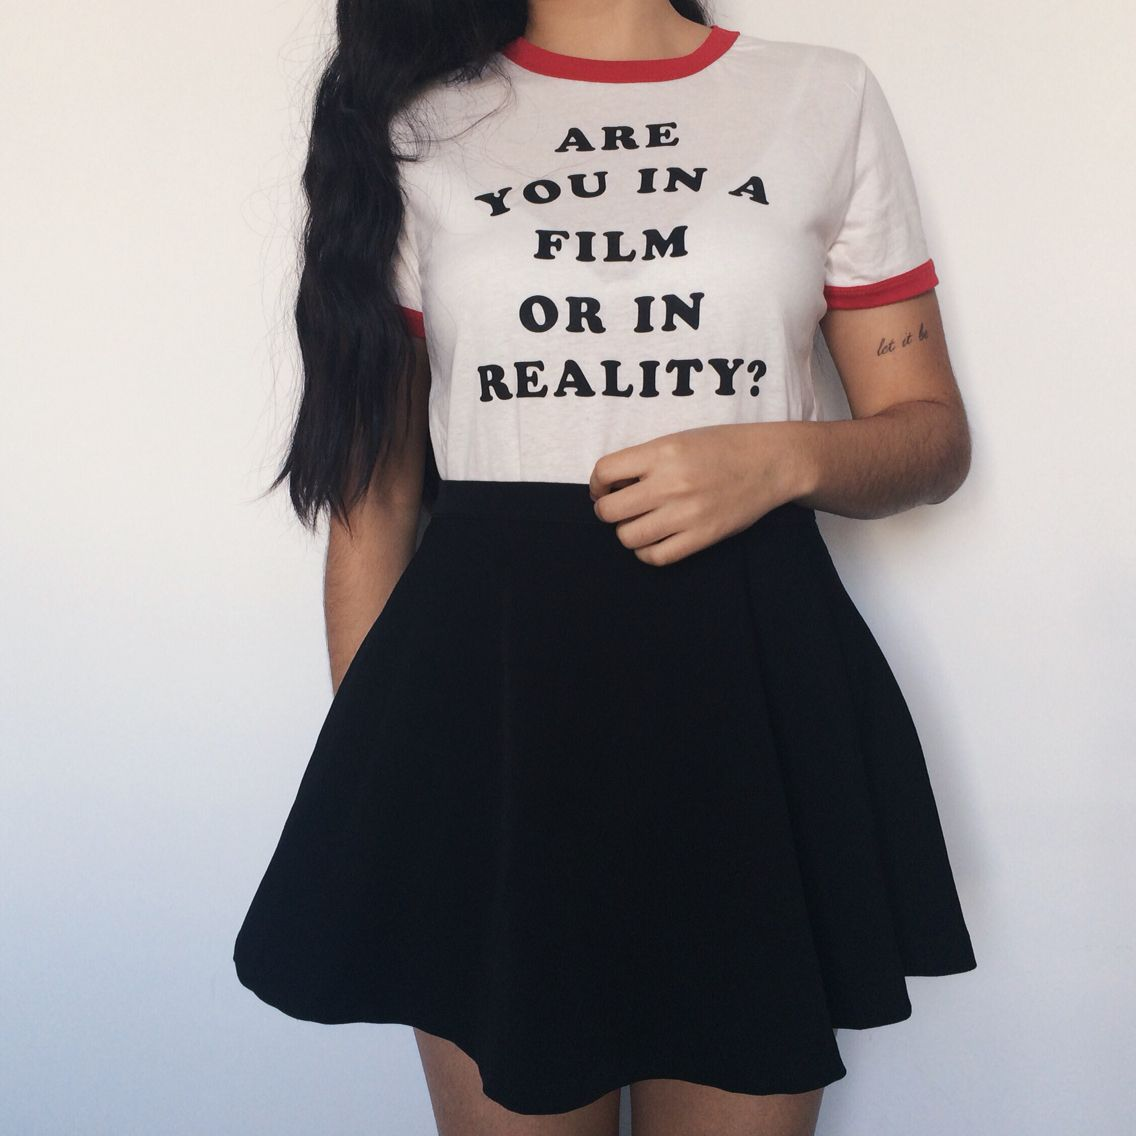 Are u in a film or reality